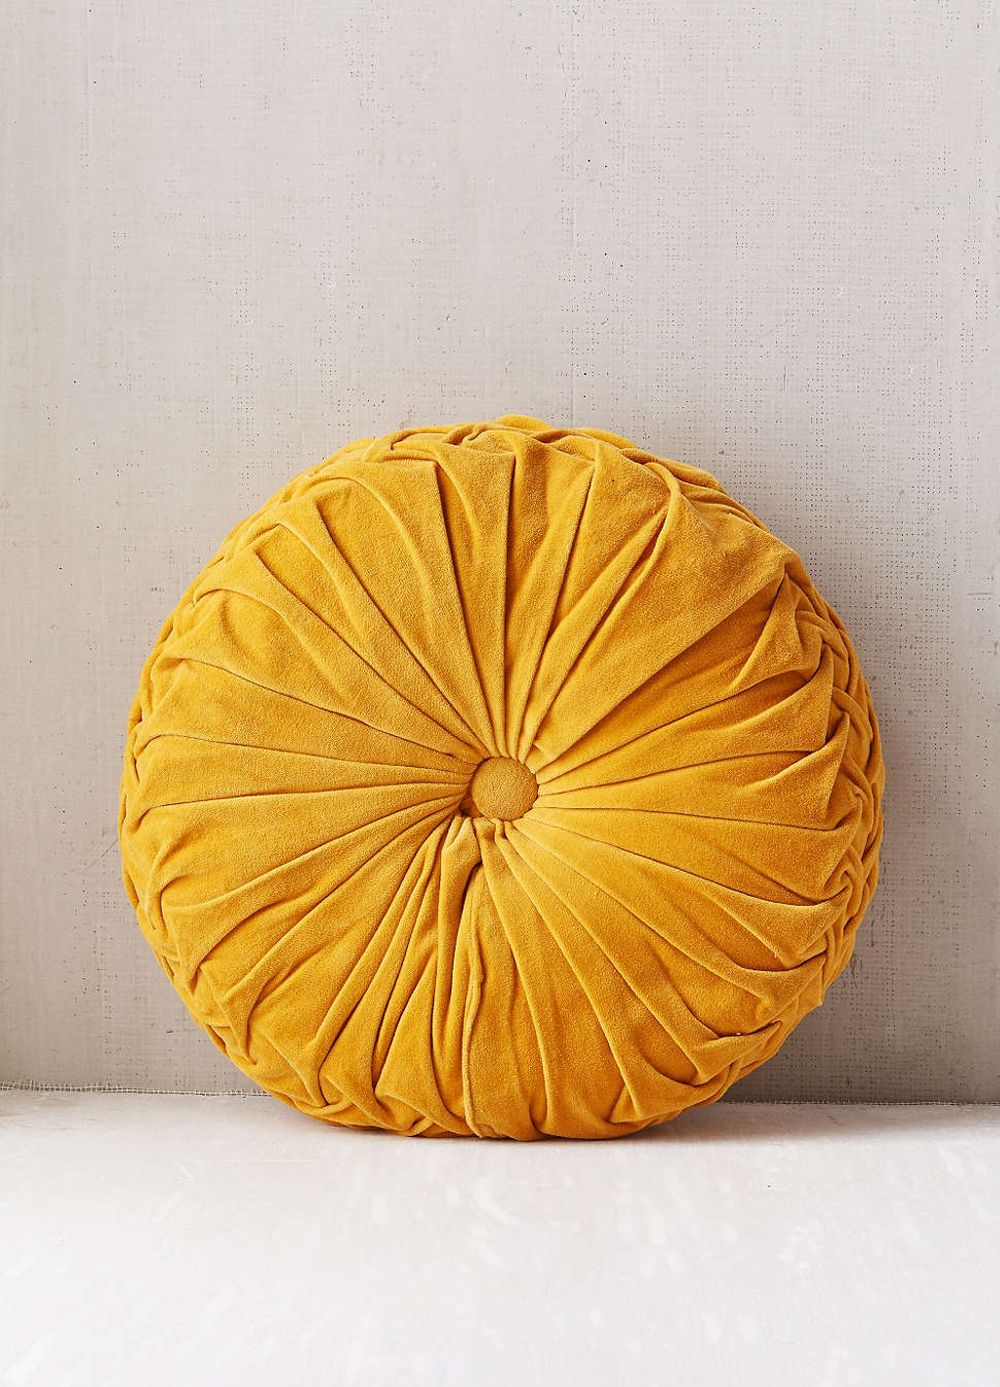 Mustard Yellow Velvet Cushion From Athropologie Interiors Interior Design Comfort For The Sofa Yellow Throw Pillows Pillows Yellow Pillows